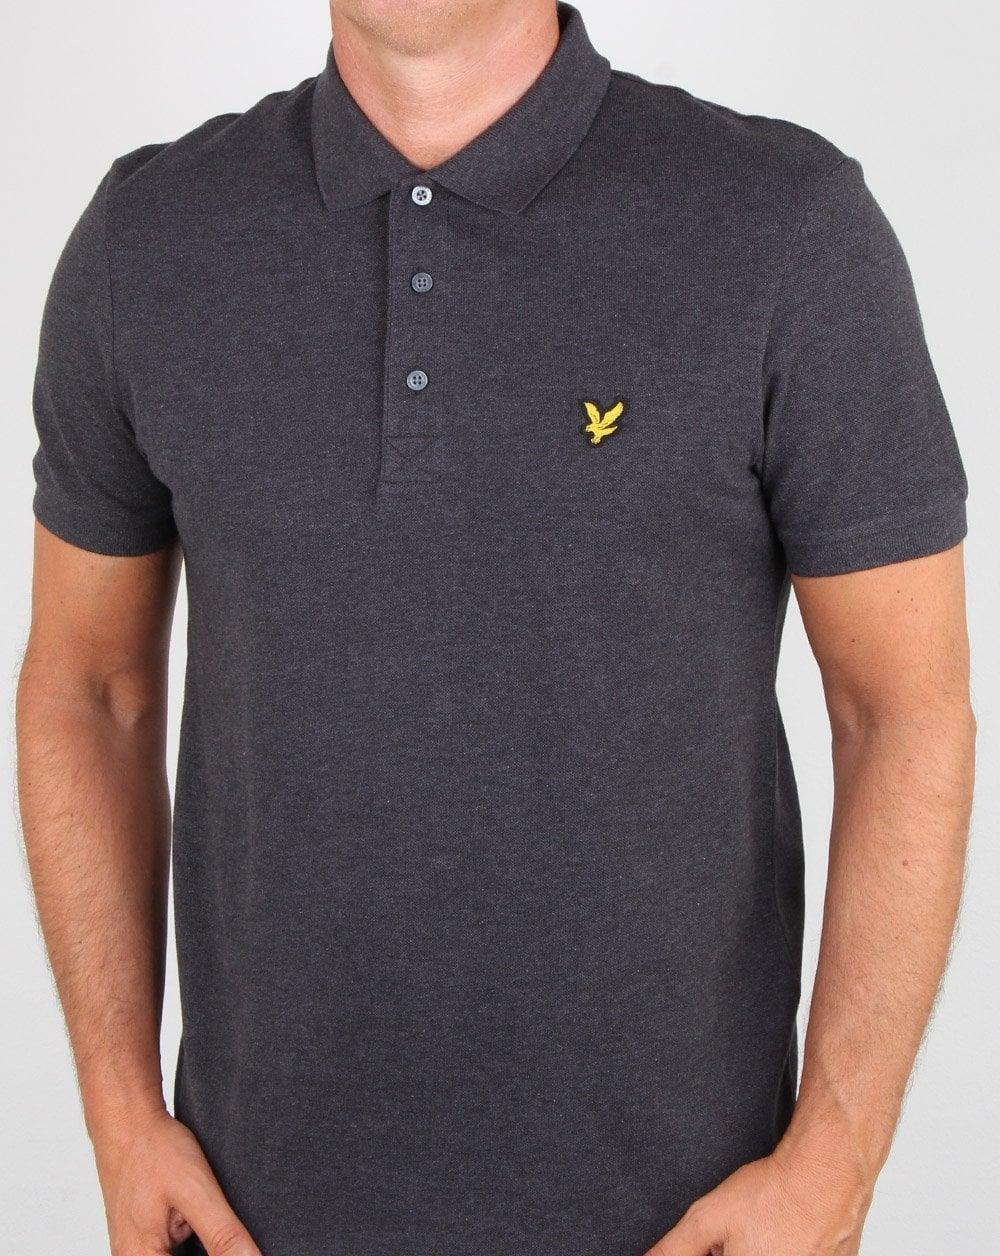 lyle and scott polo shirt charcoal marl 80s casual classics. Black Bedroom Furniture Sets. Home Design Ideas